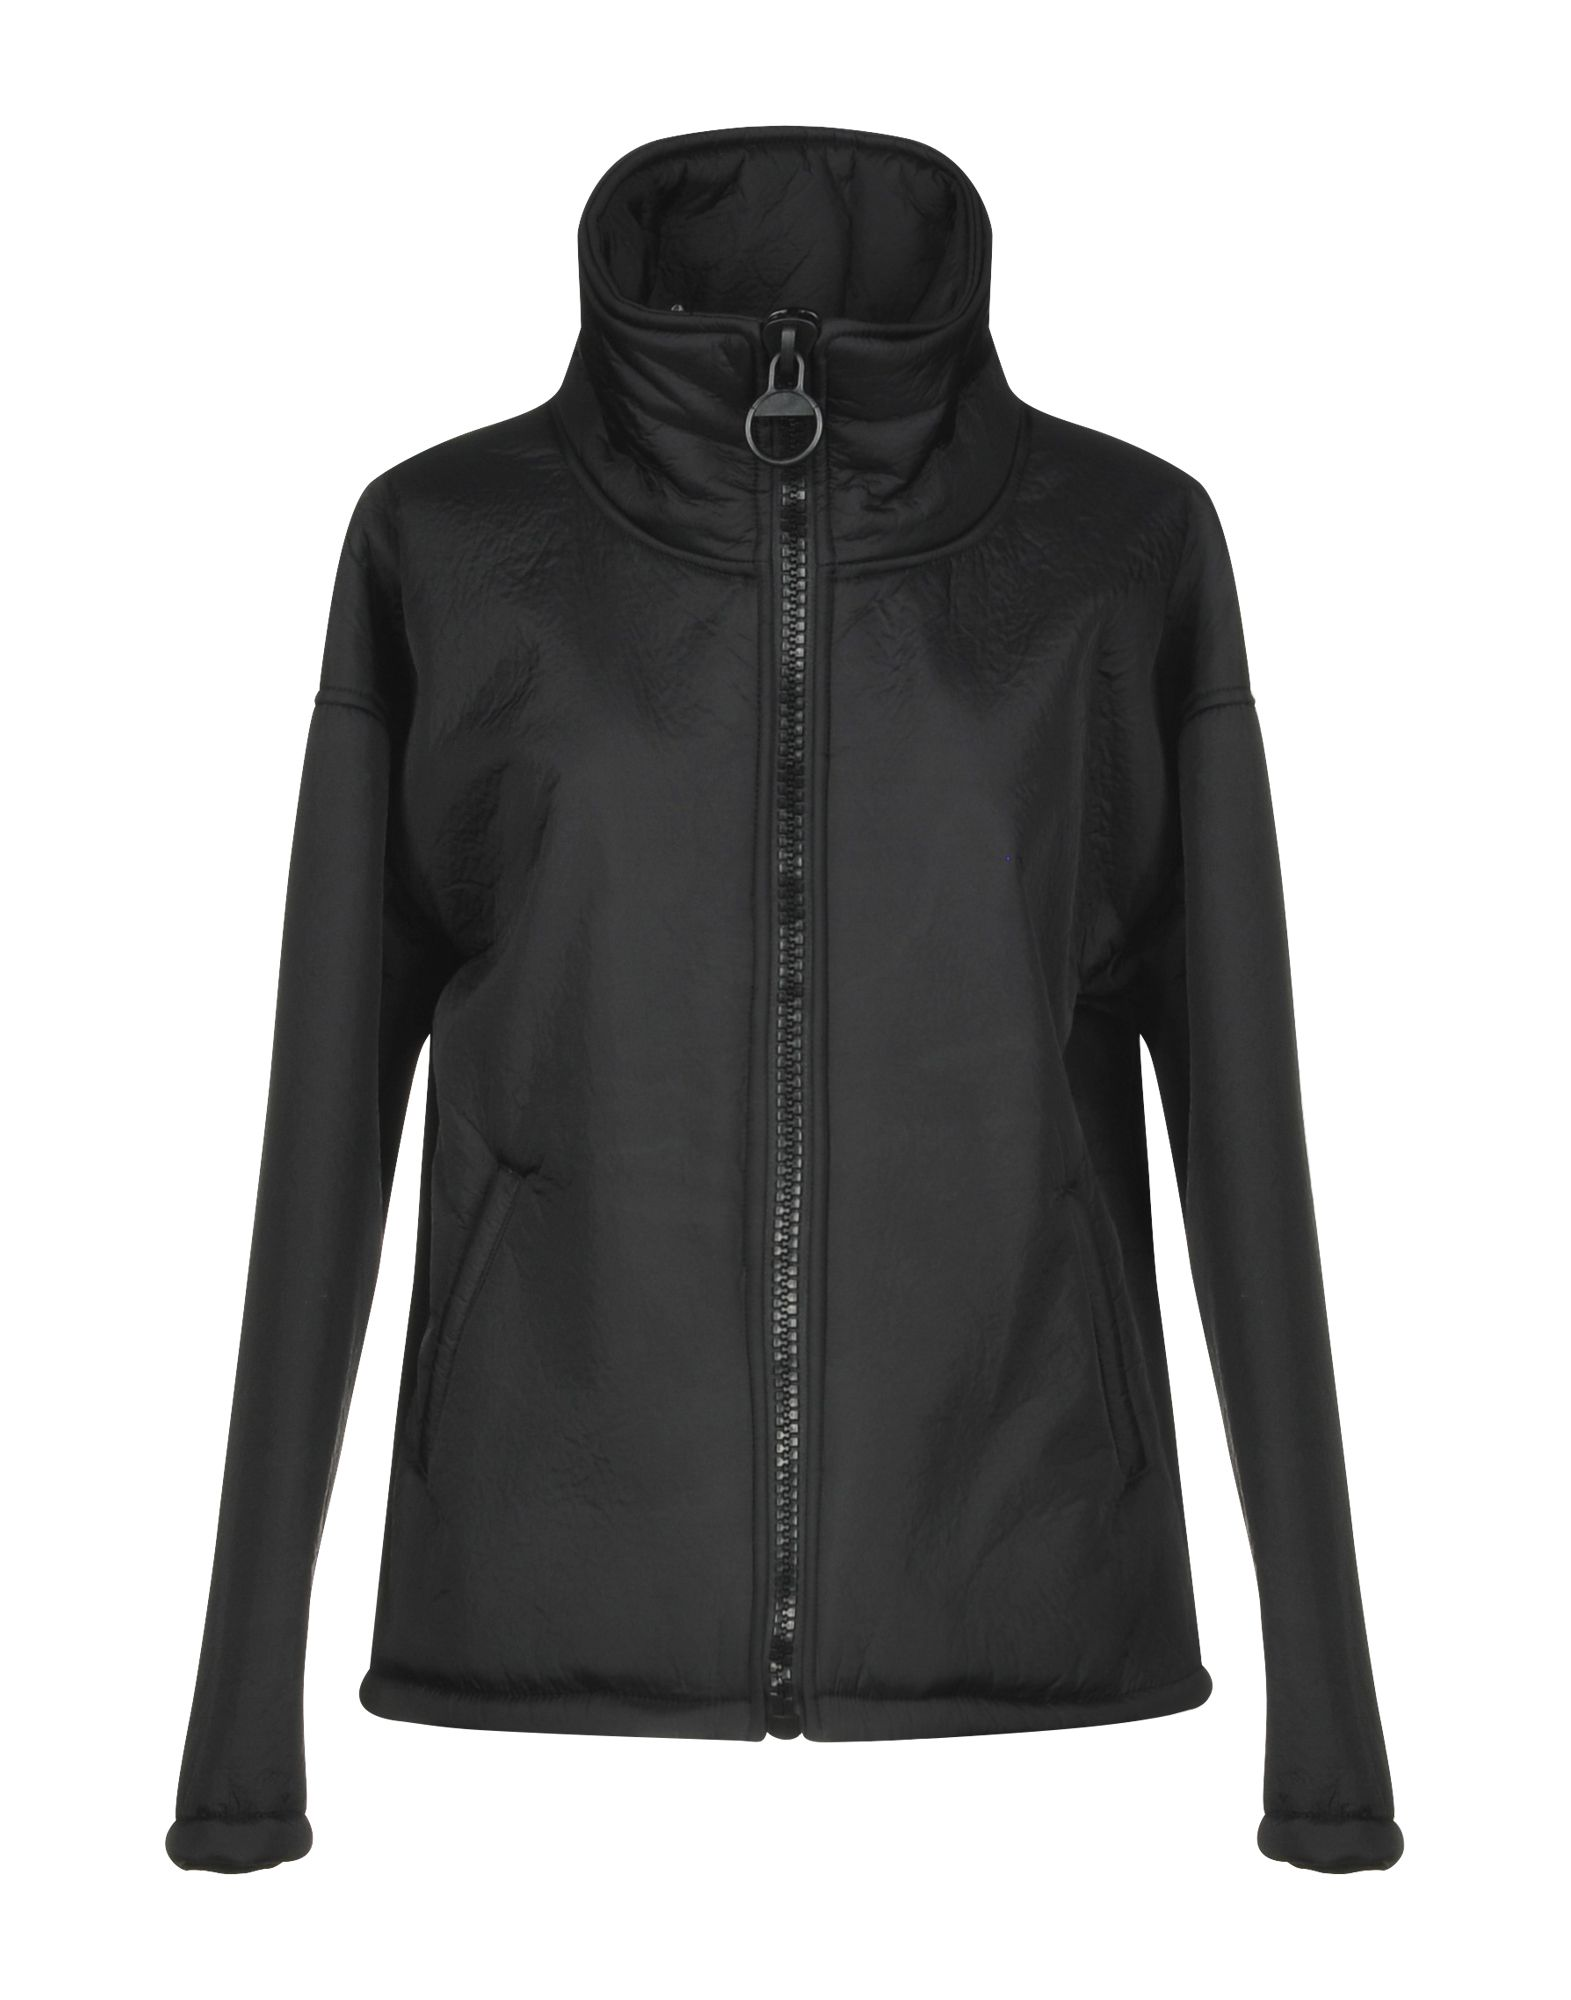 NUMERO00 Jacket in Black